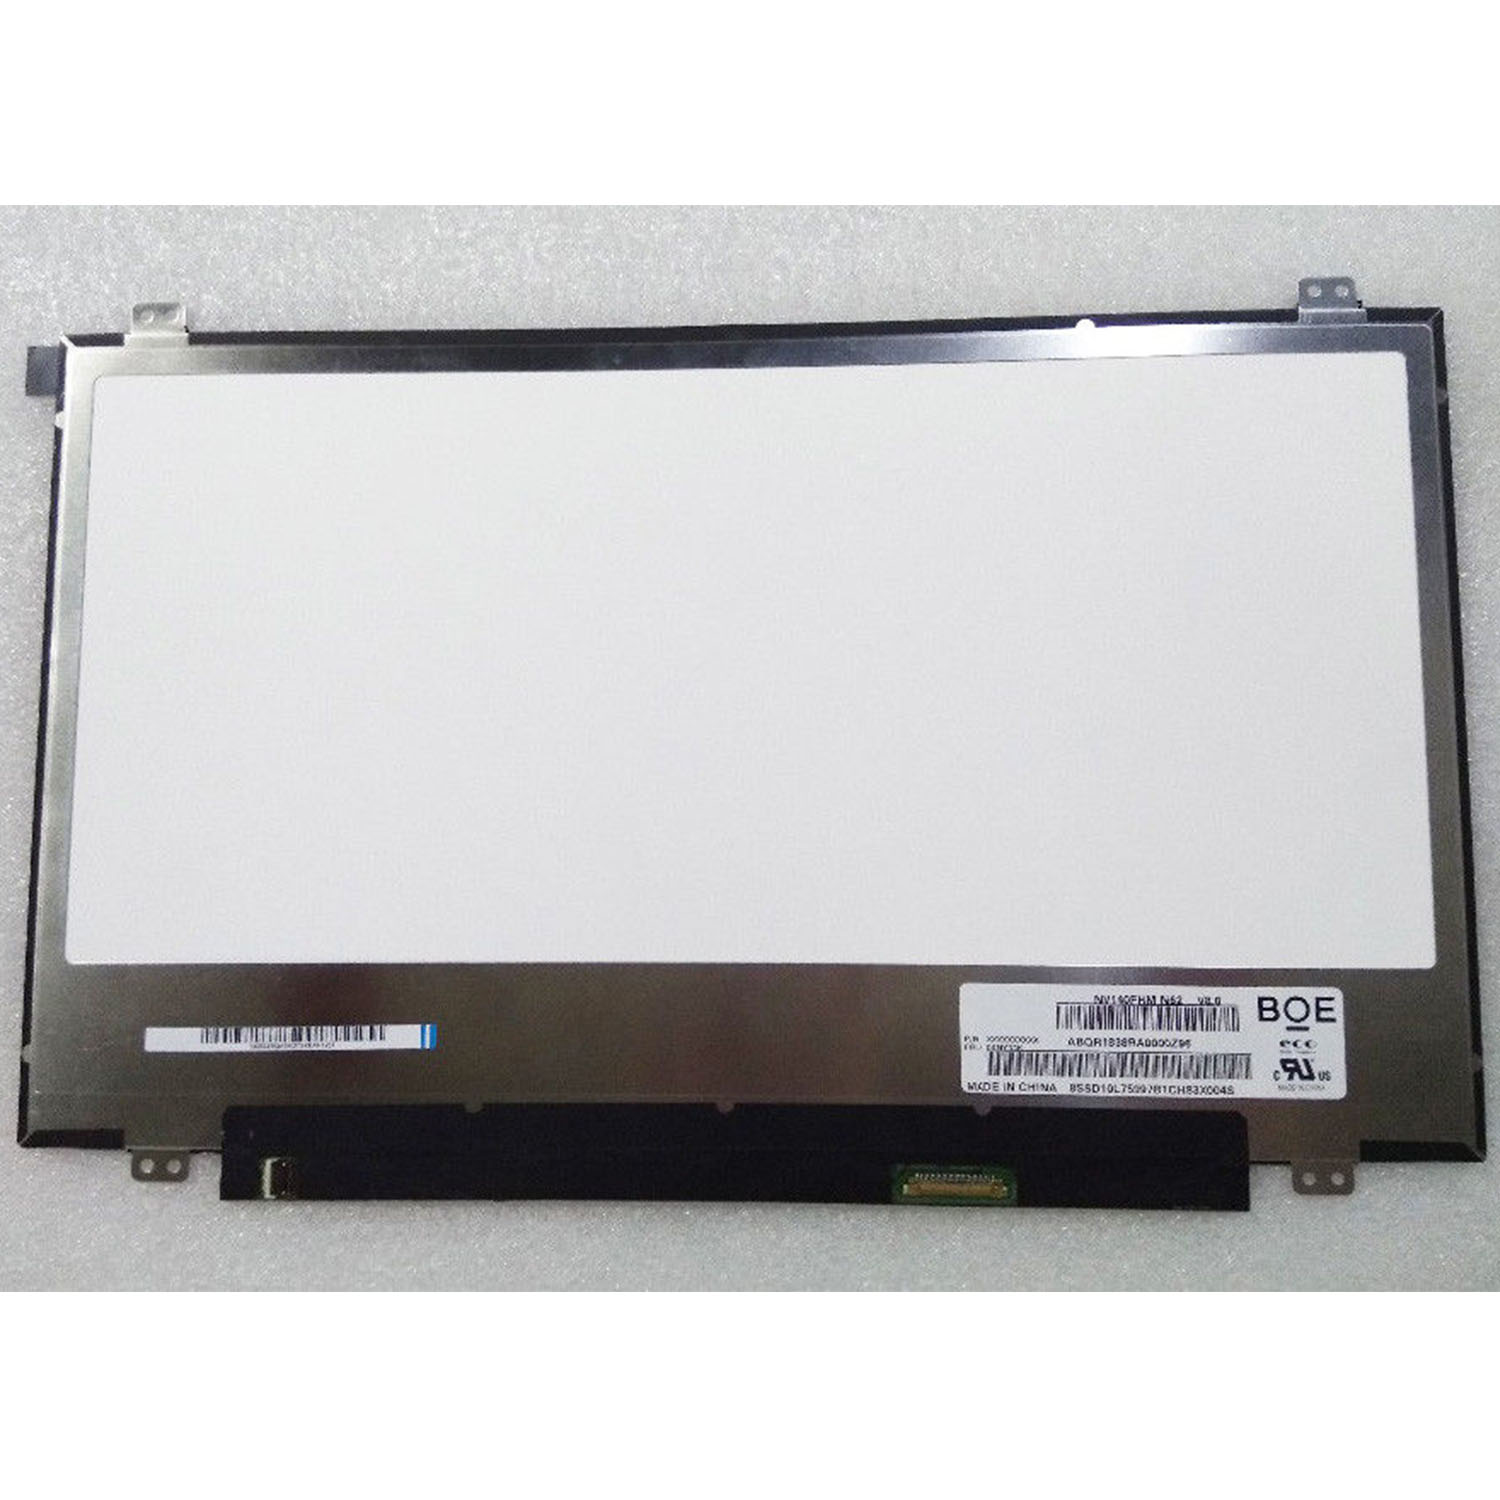 For BOE NV140FHM-N62 V8.0 00NY446 Laptop LCD Screen LED Display Panel 14.0 Inch 1920x1080 IPS EDP 30 Pins Matrix NV140FHM 62